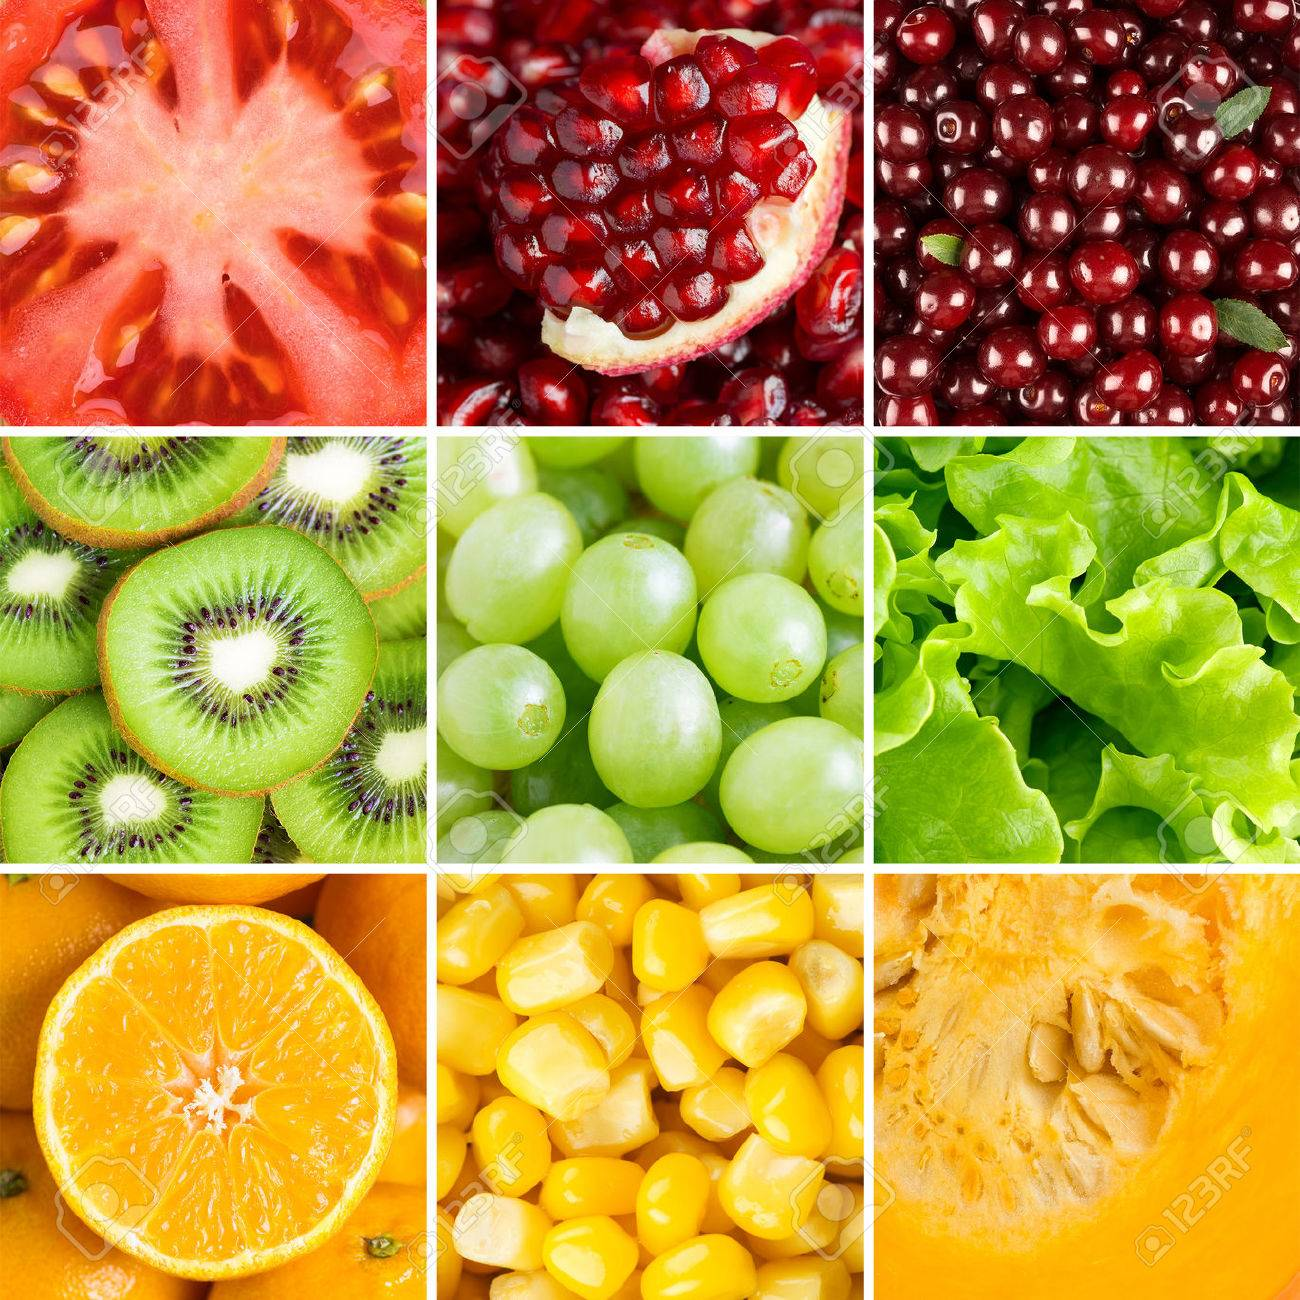 Healthy food background  ollection with different fruits, berries